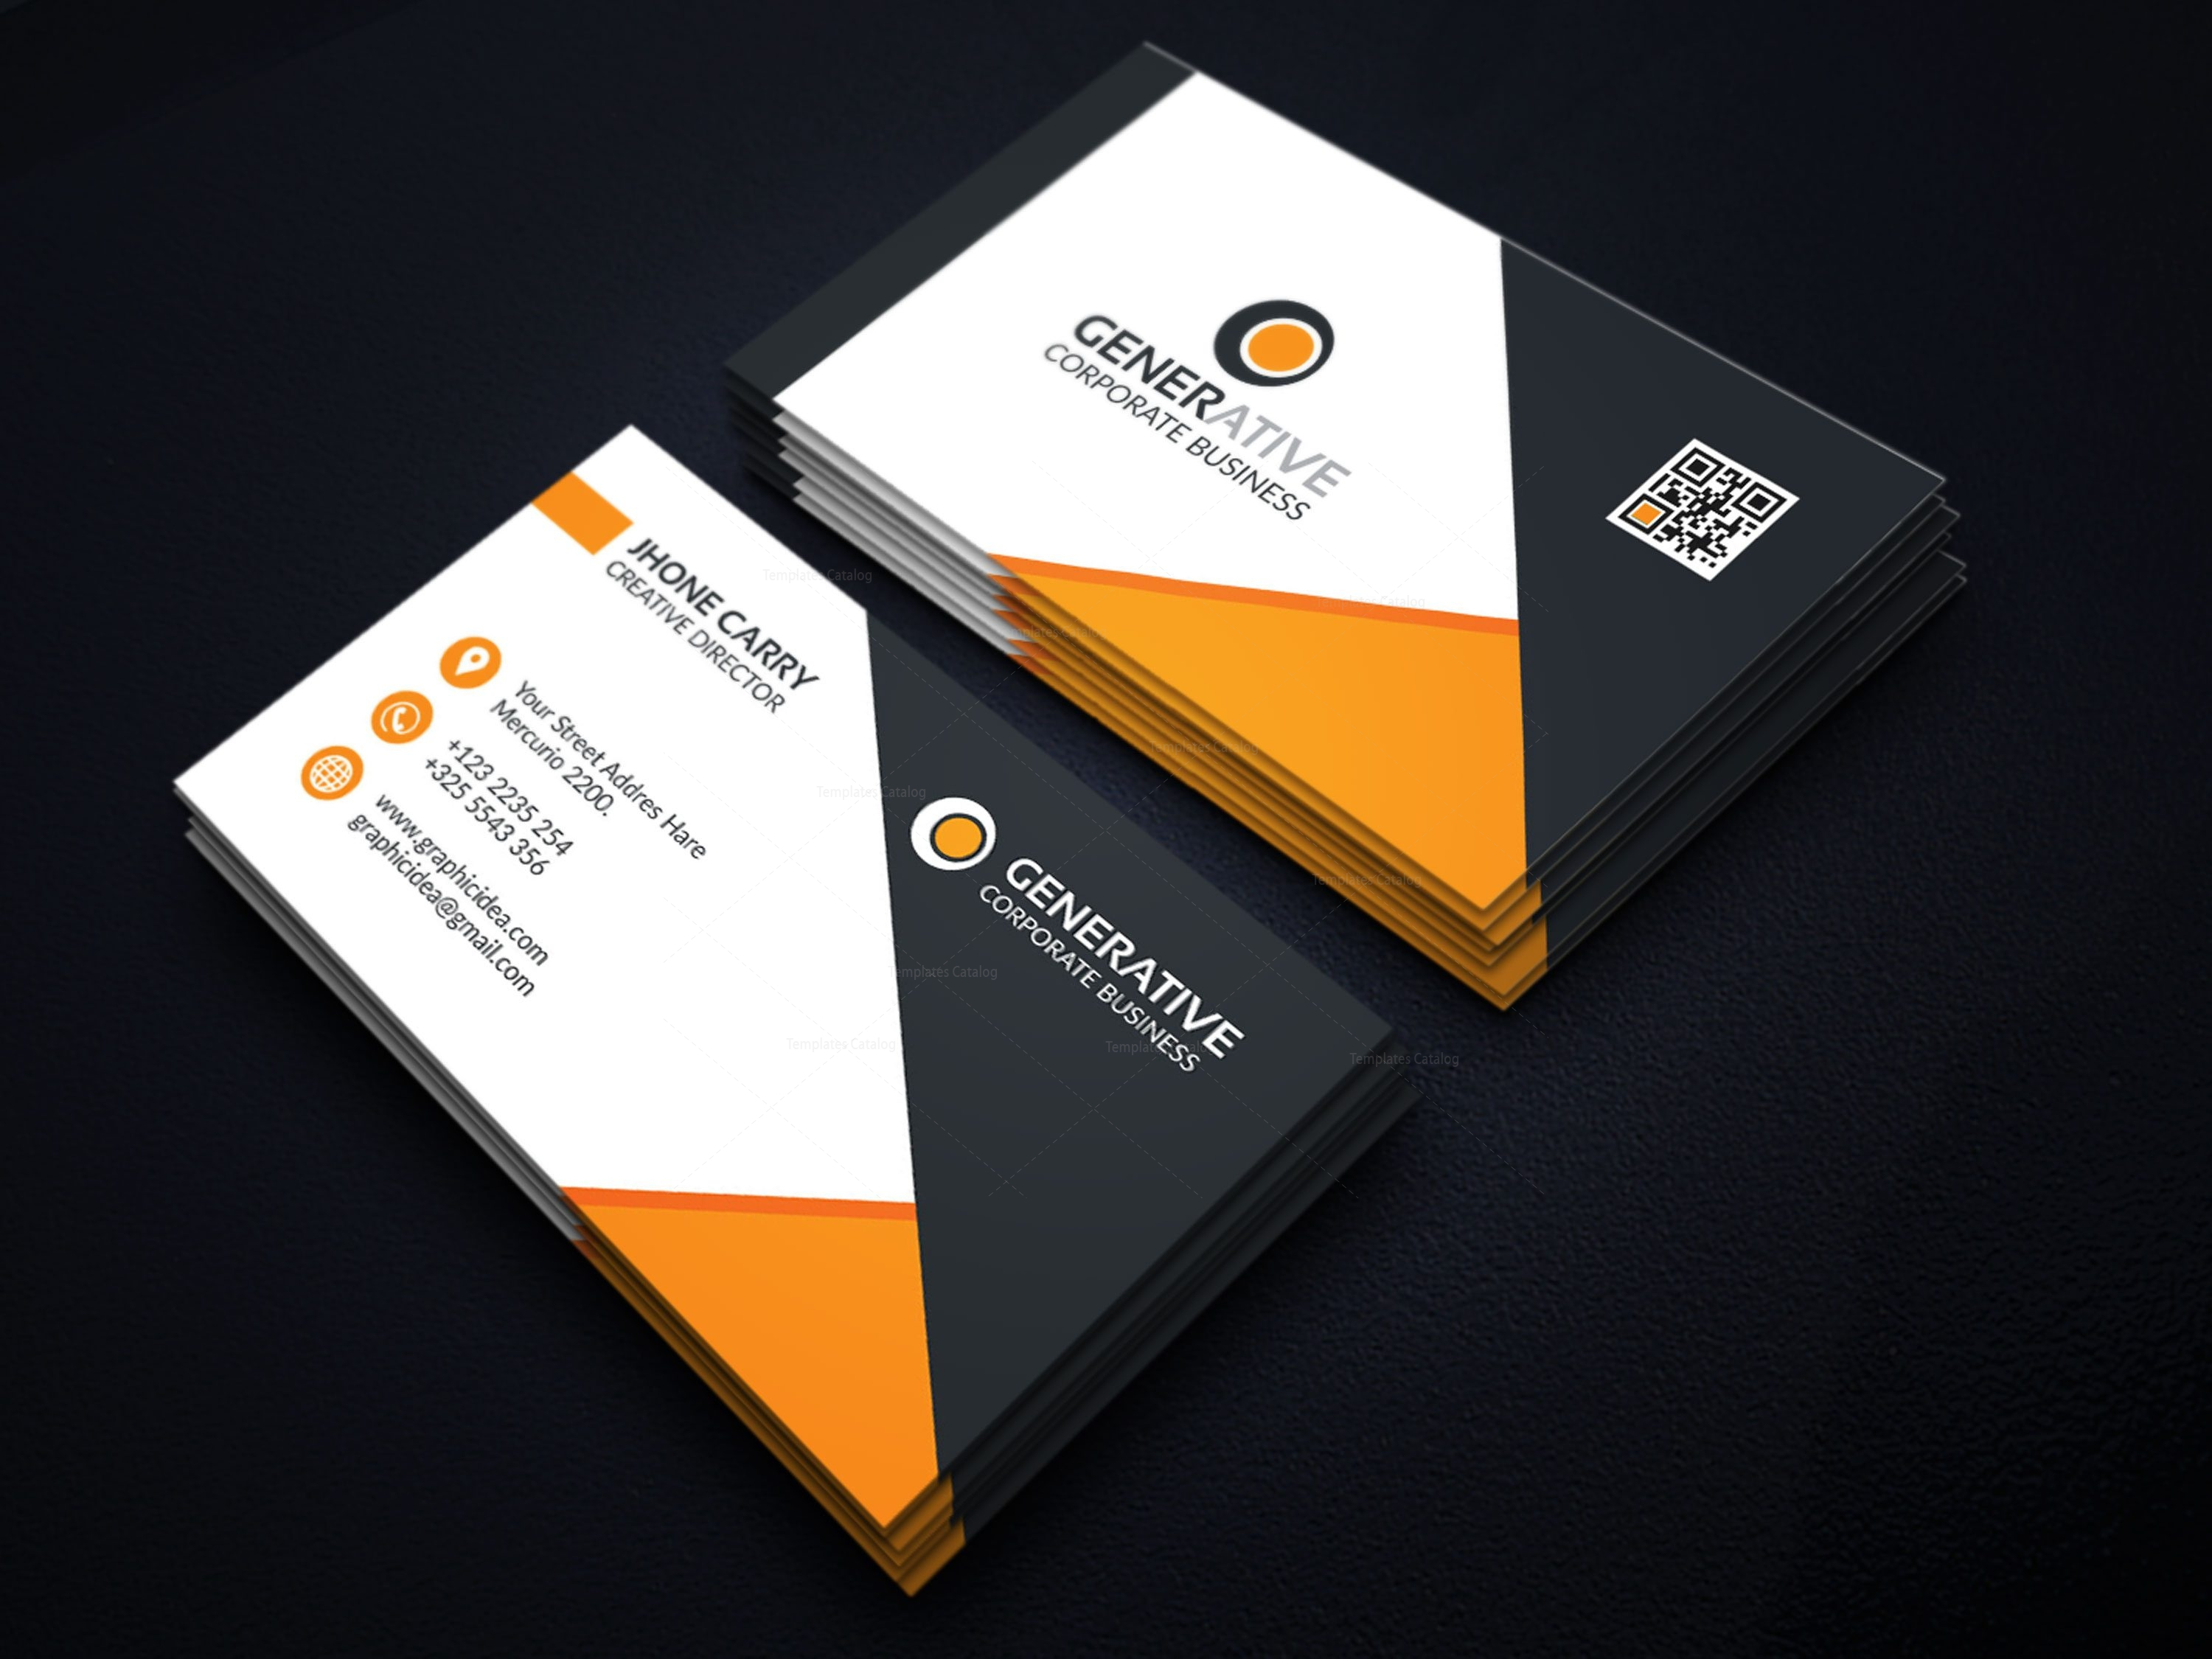 Eps creative business card design template 001596 template catalog eps creative business card design template 3 flashek Images